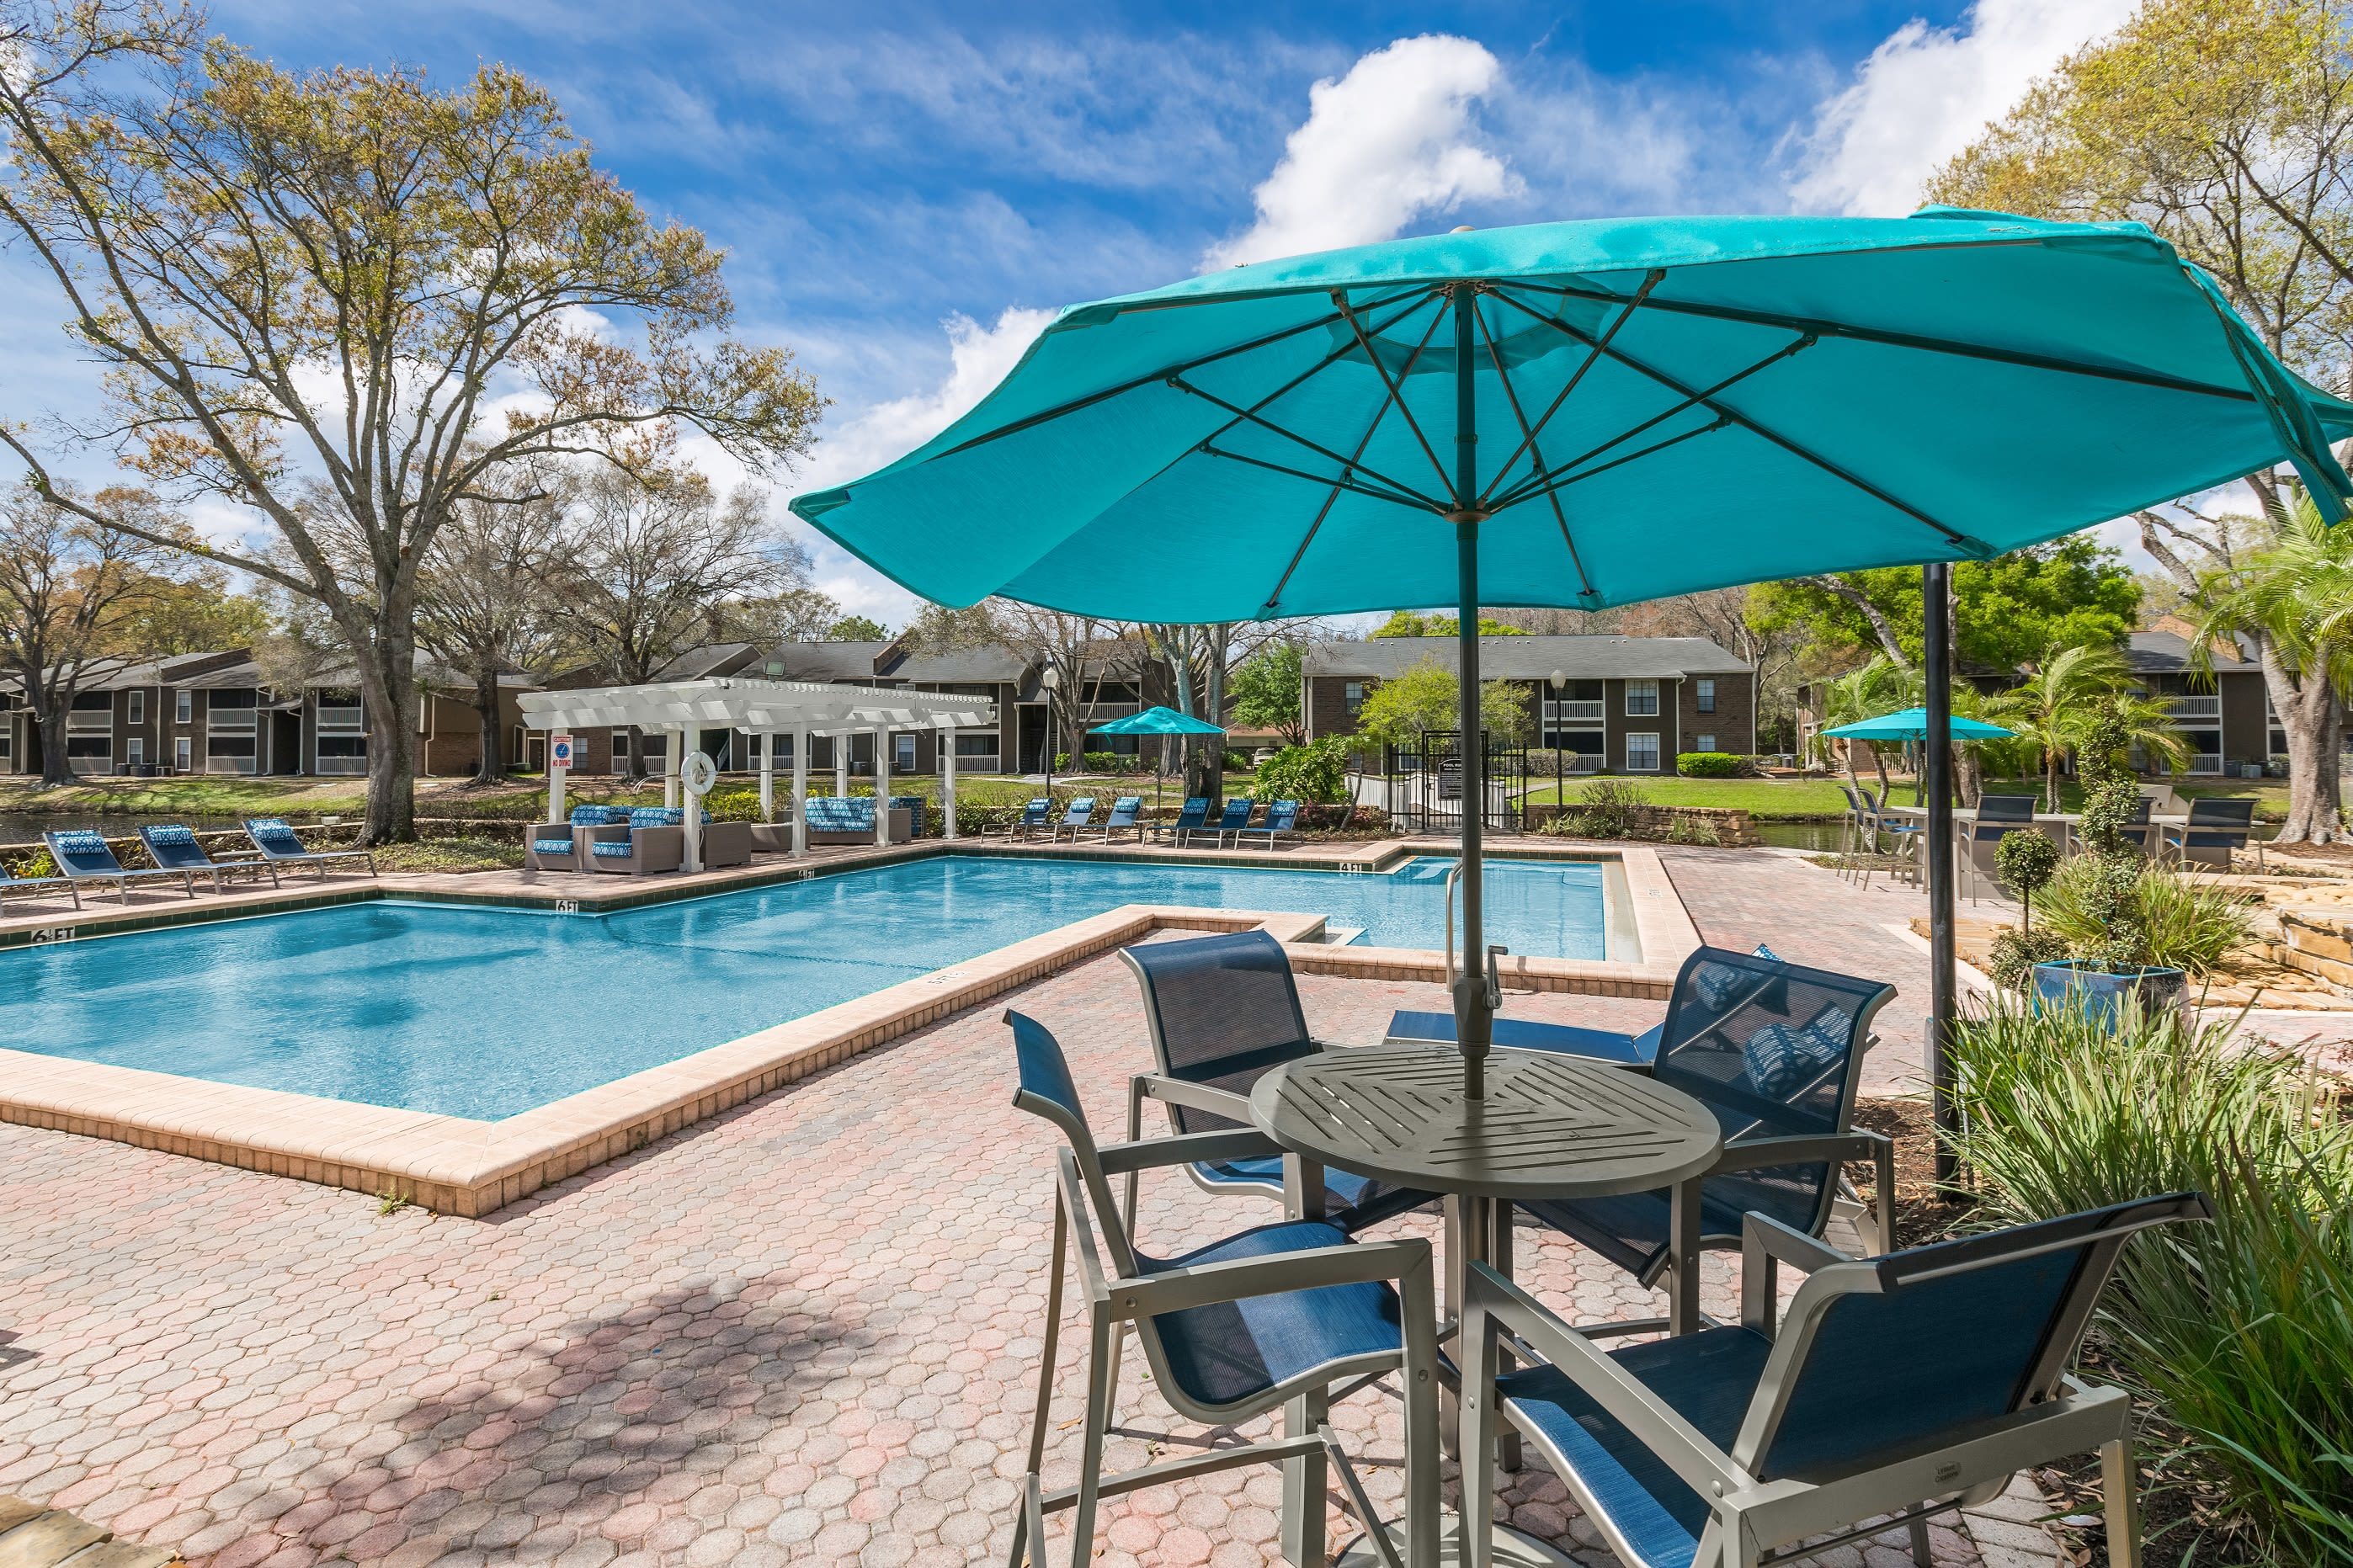 Outdoor swimming pool at Avion at Carrollwood in Tampa, Florida